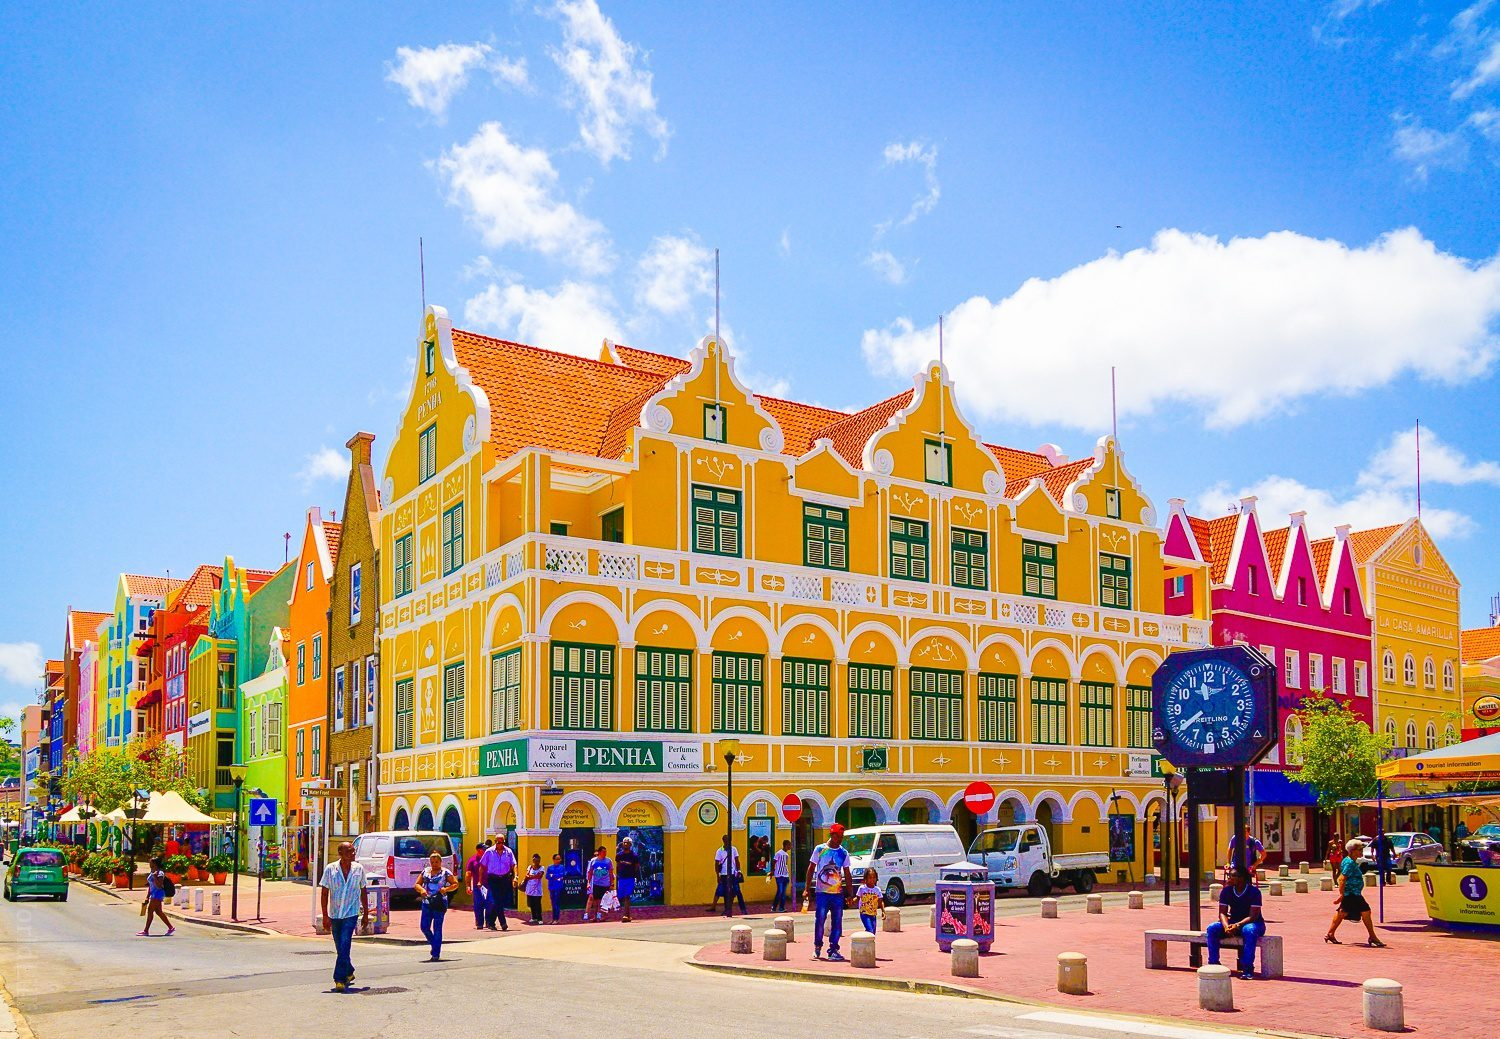 The famous Penha building in Willemstad.